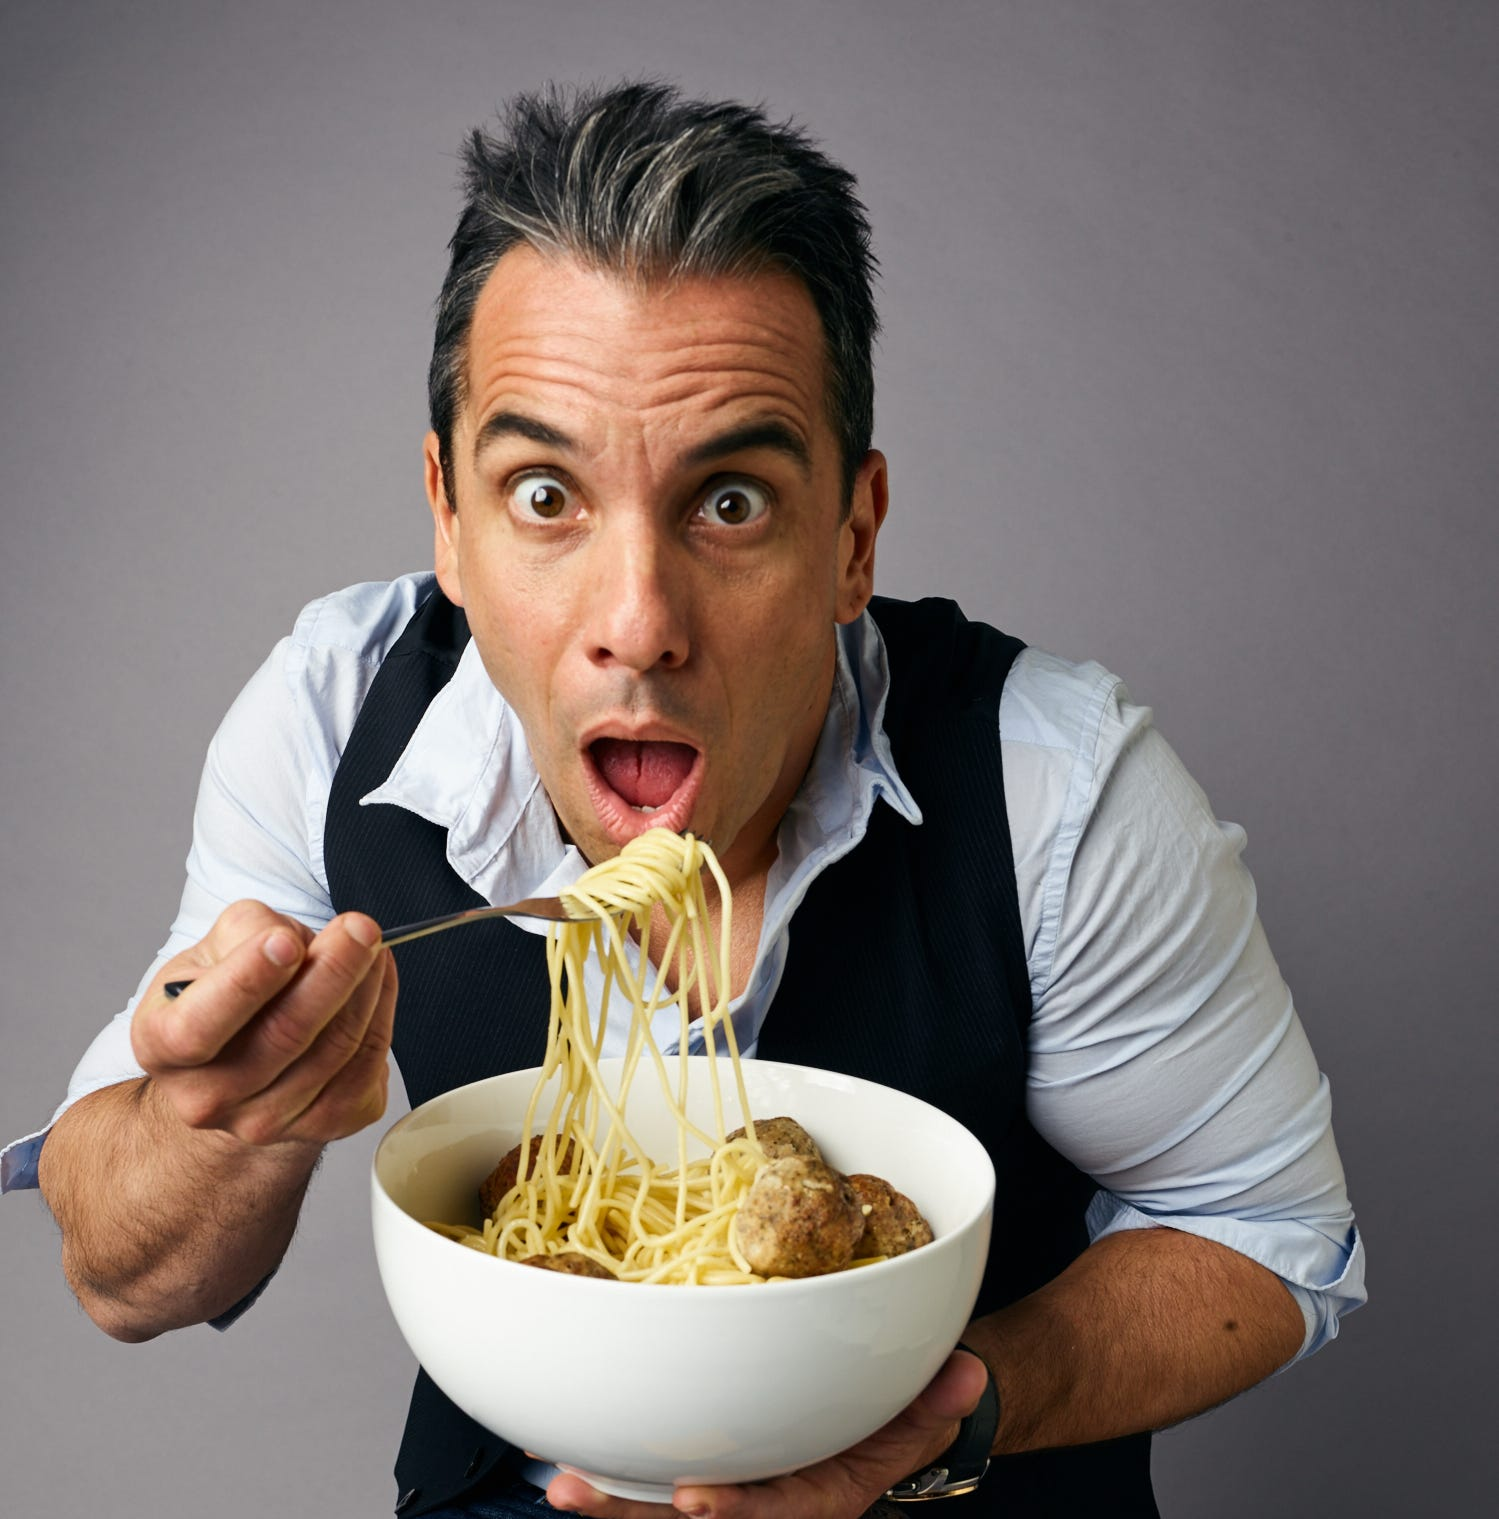 Things to do in Fort Myers, Cape Coral area: Old Dominion, Sebastian Maniscalco, etc.